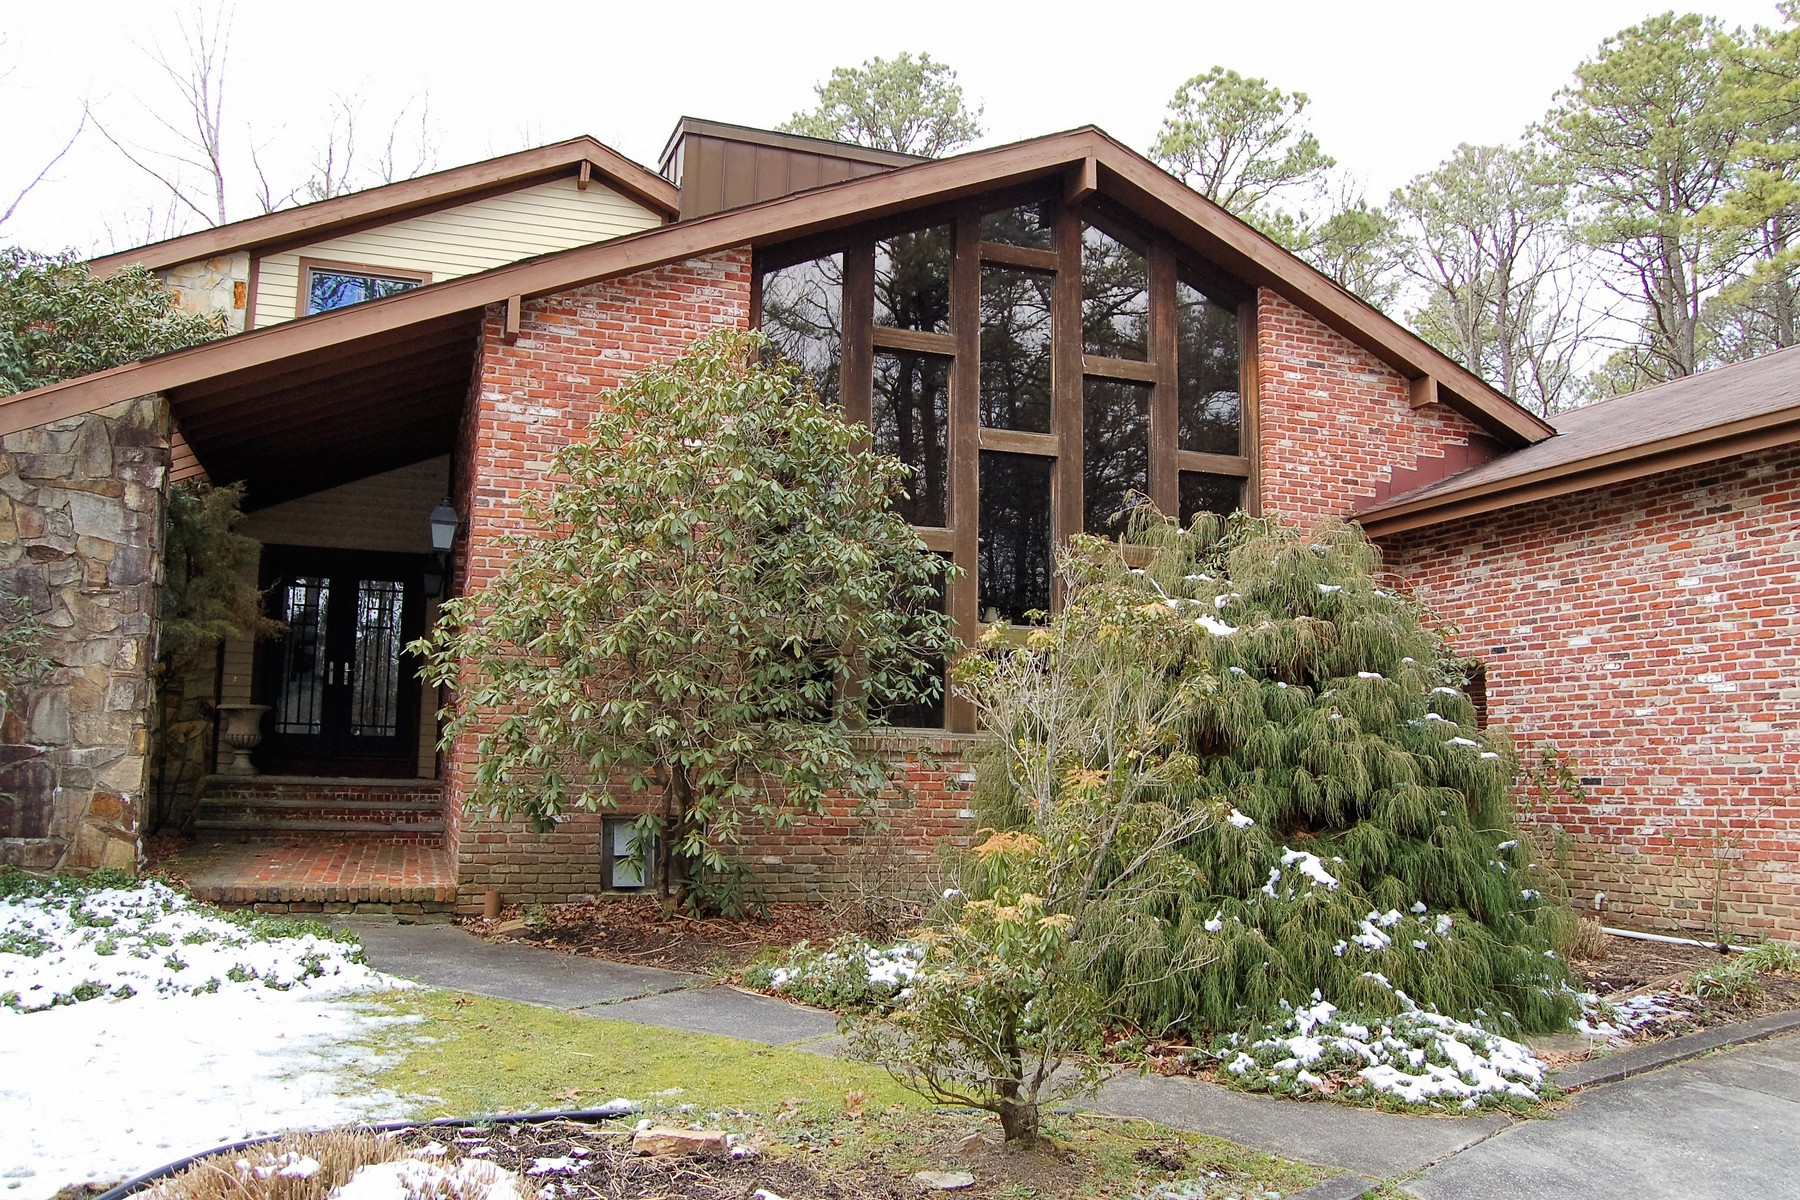 Single Family Home for Sale at Custom Home in a Private Setting 113 E Great Creek Road Galloway, New Jersey 08205 United States